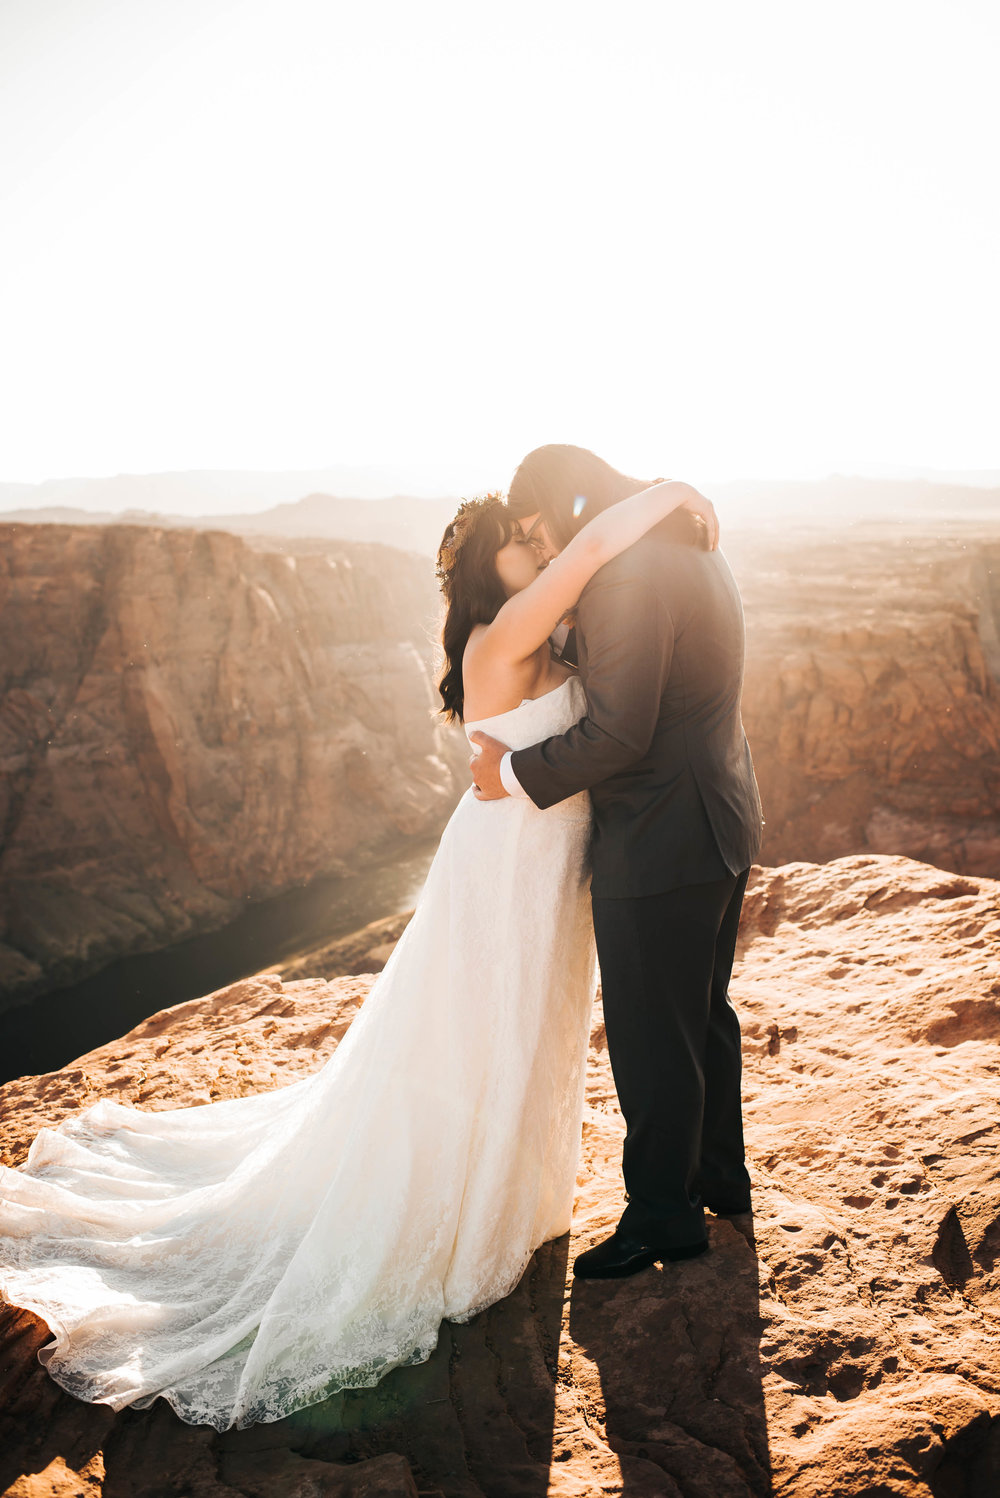 oregon arizon california utah georgia nontraditional adventure wedding elopement photographer-444.jpg